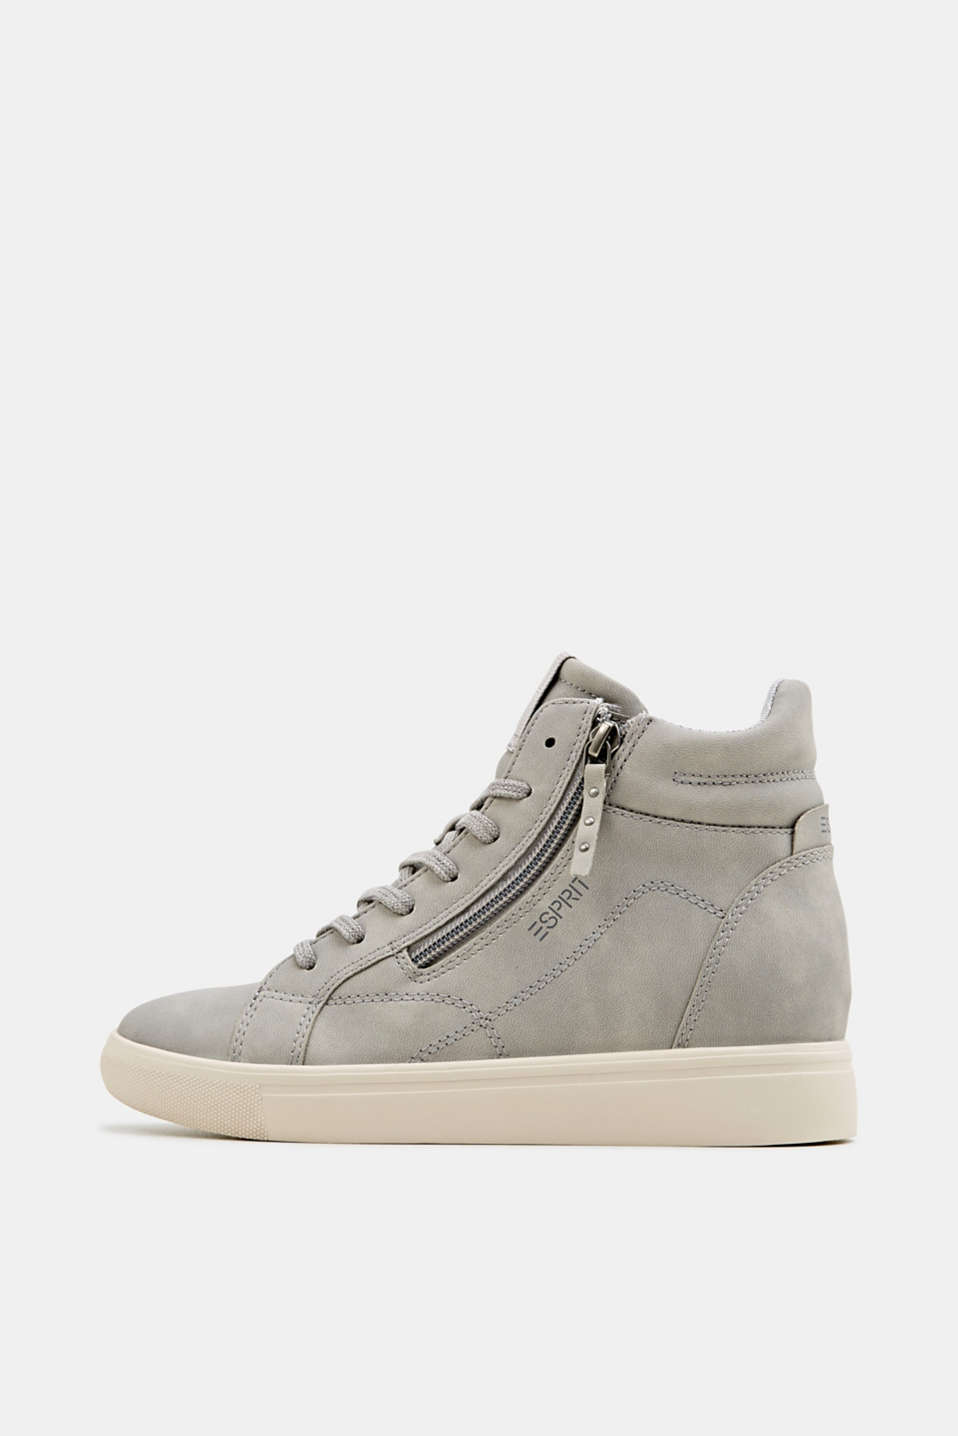 Esprit - Wedge trainers in faux nubuck leather